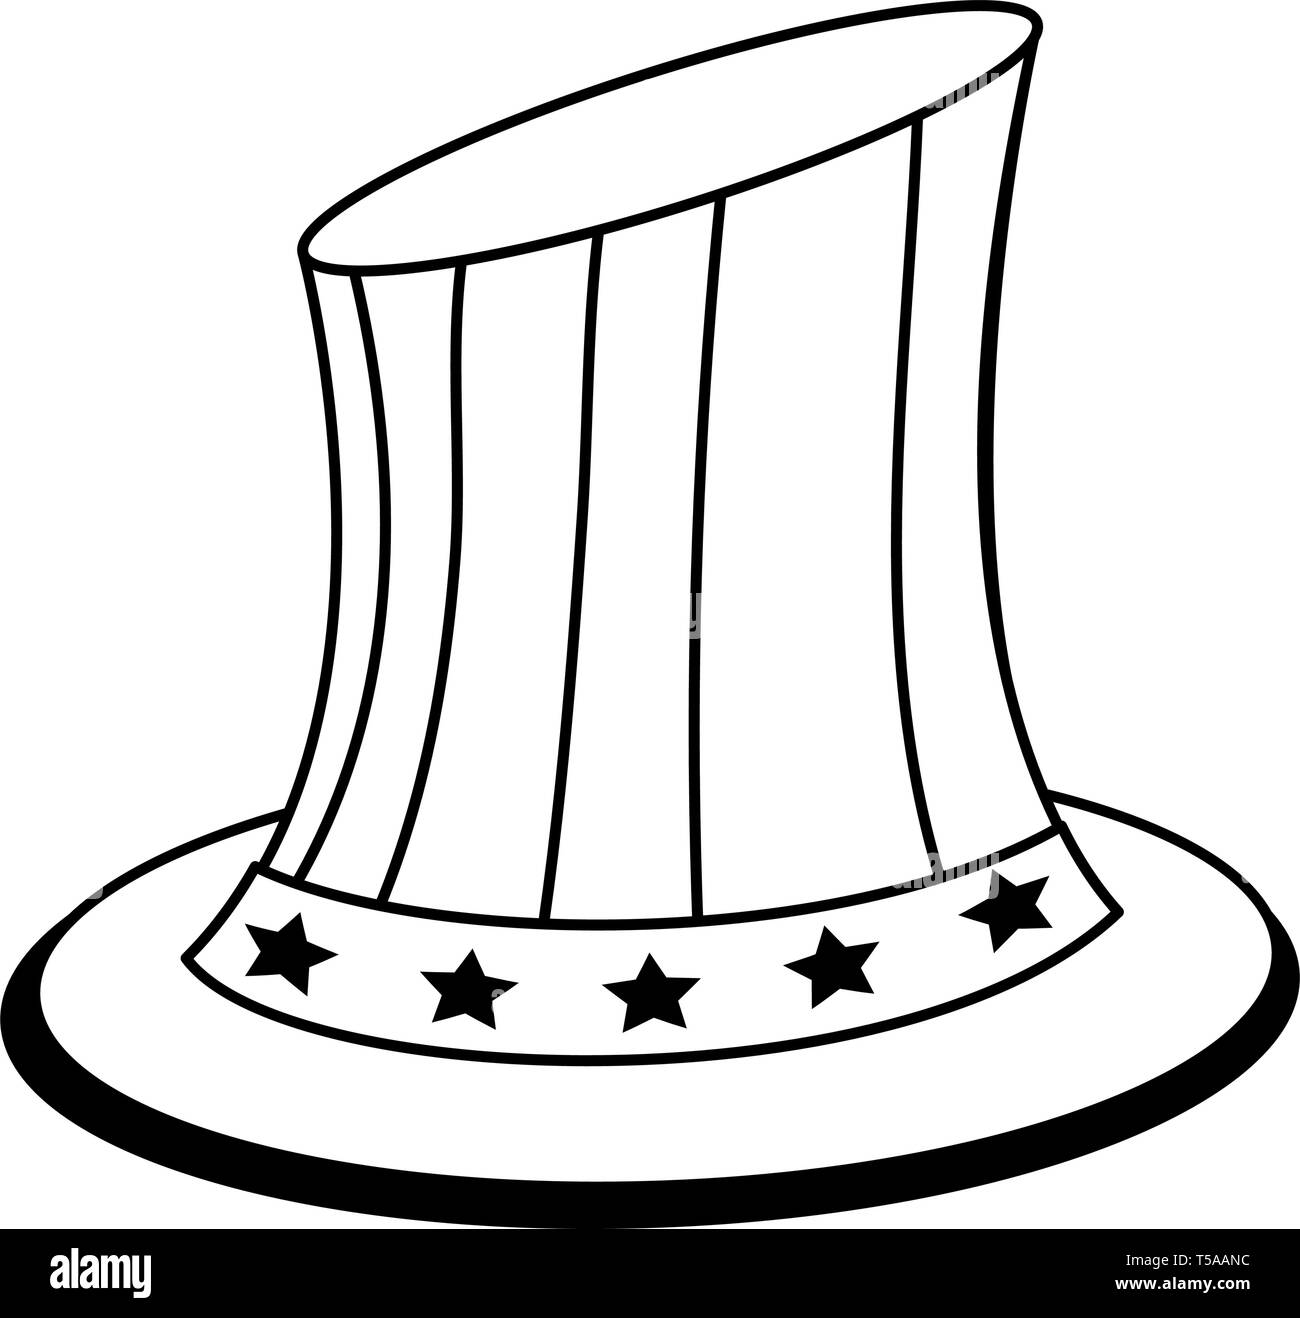 Uncle sam united states hat patriotic isolated in black and white - Stock Image